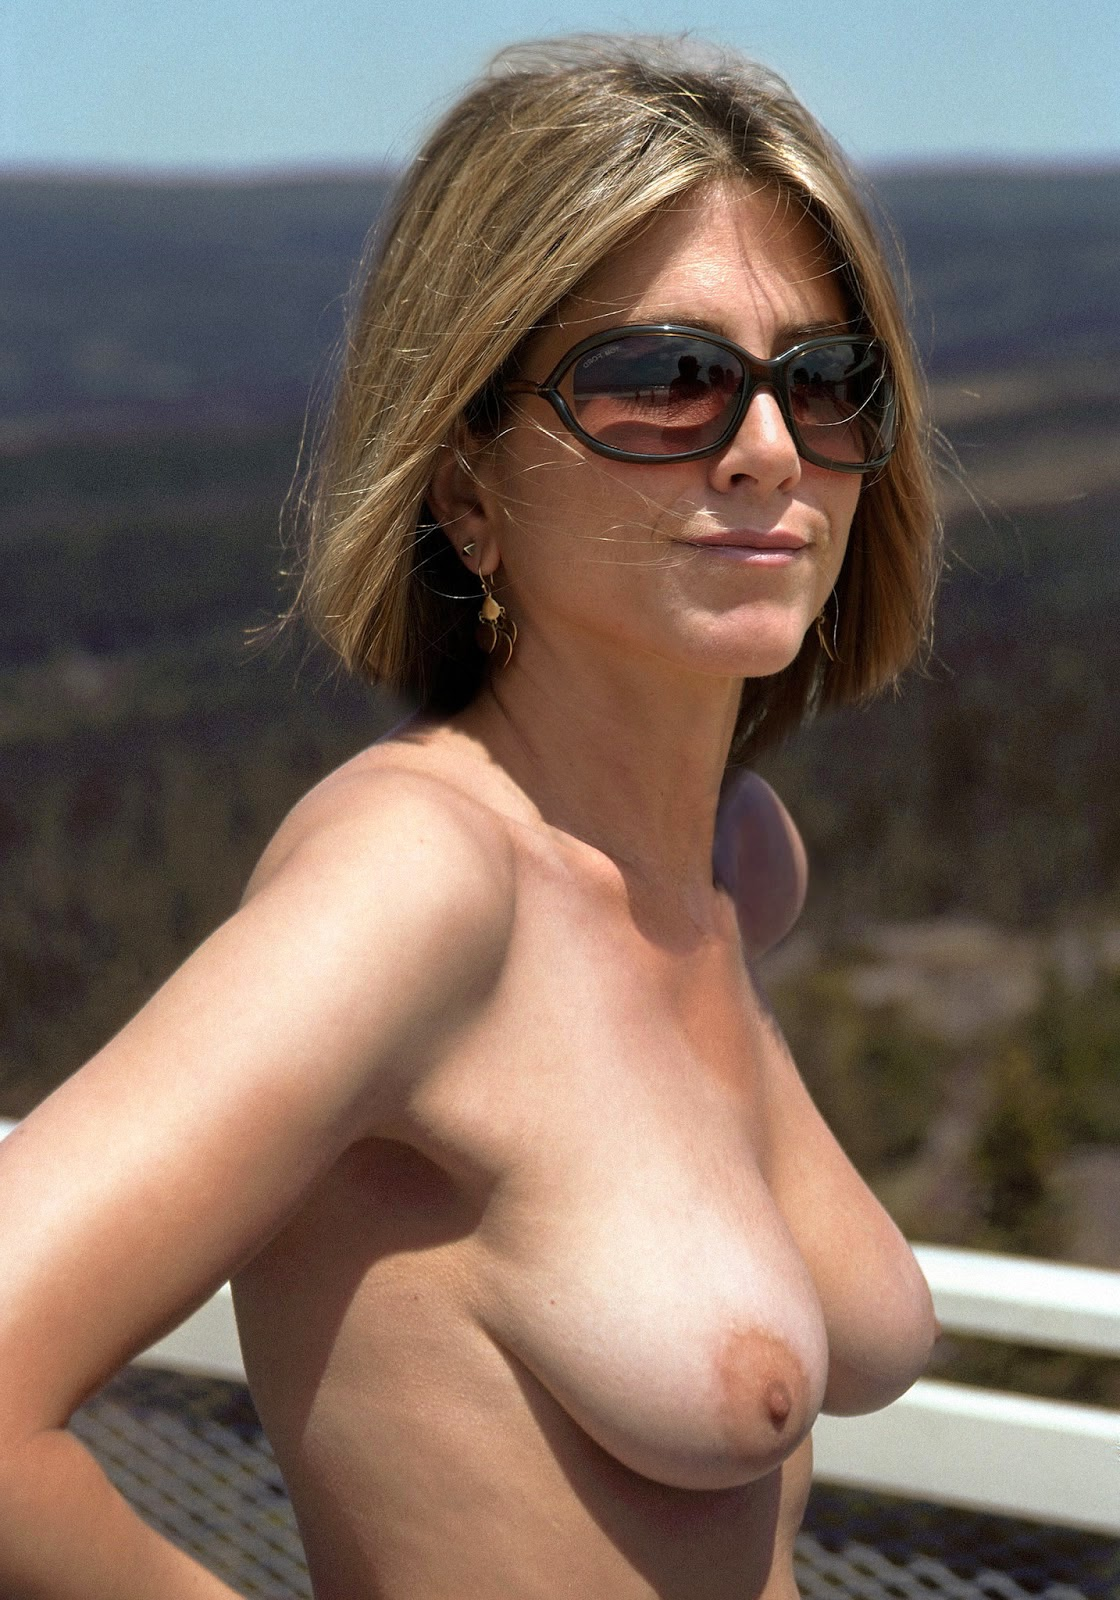 Actriz Porno Aniston top 10 jennifer aniston nude pics of all time | free hot